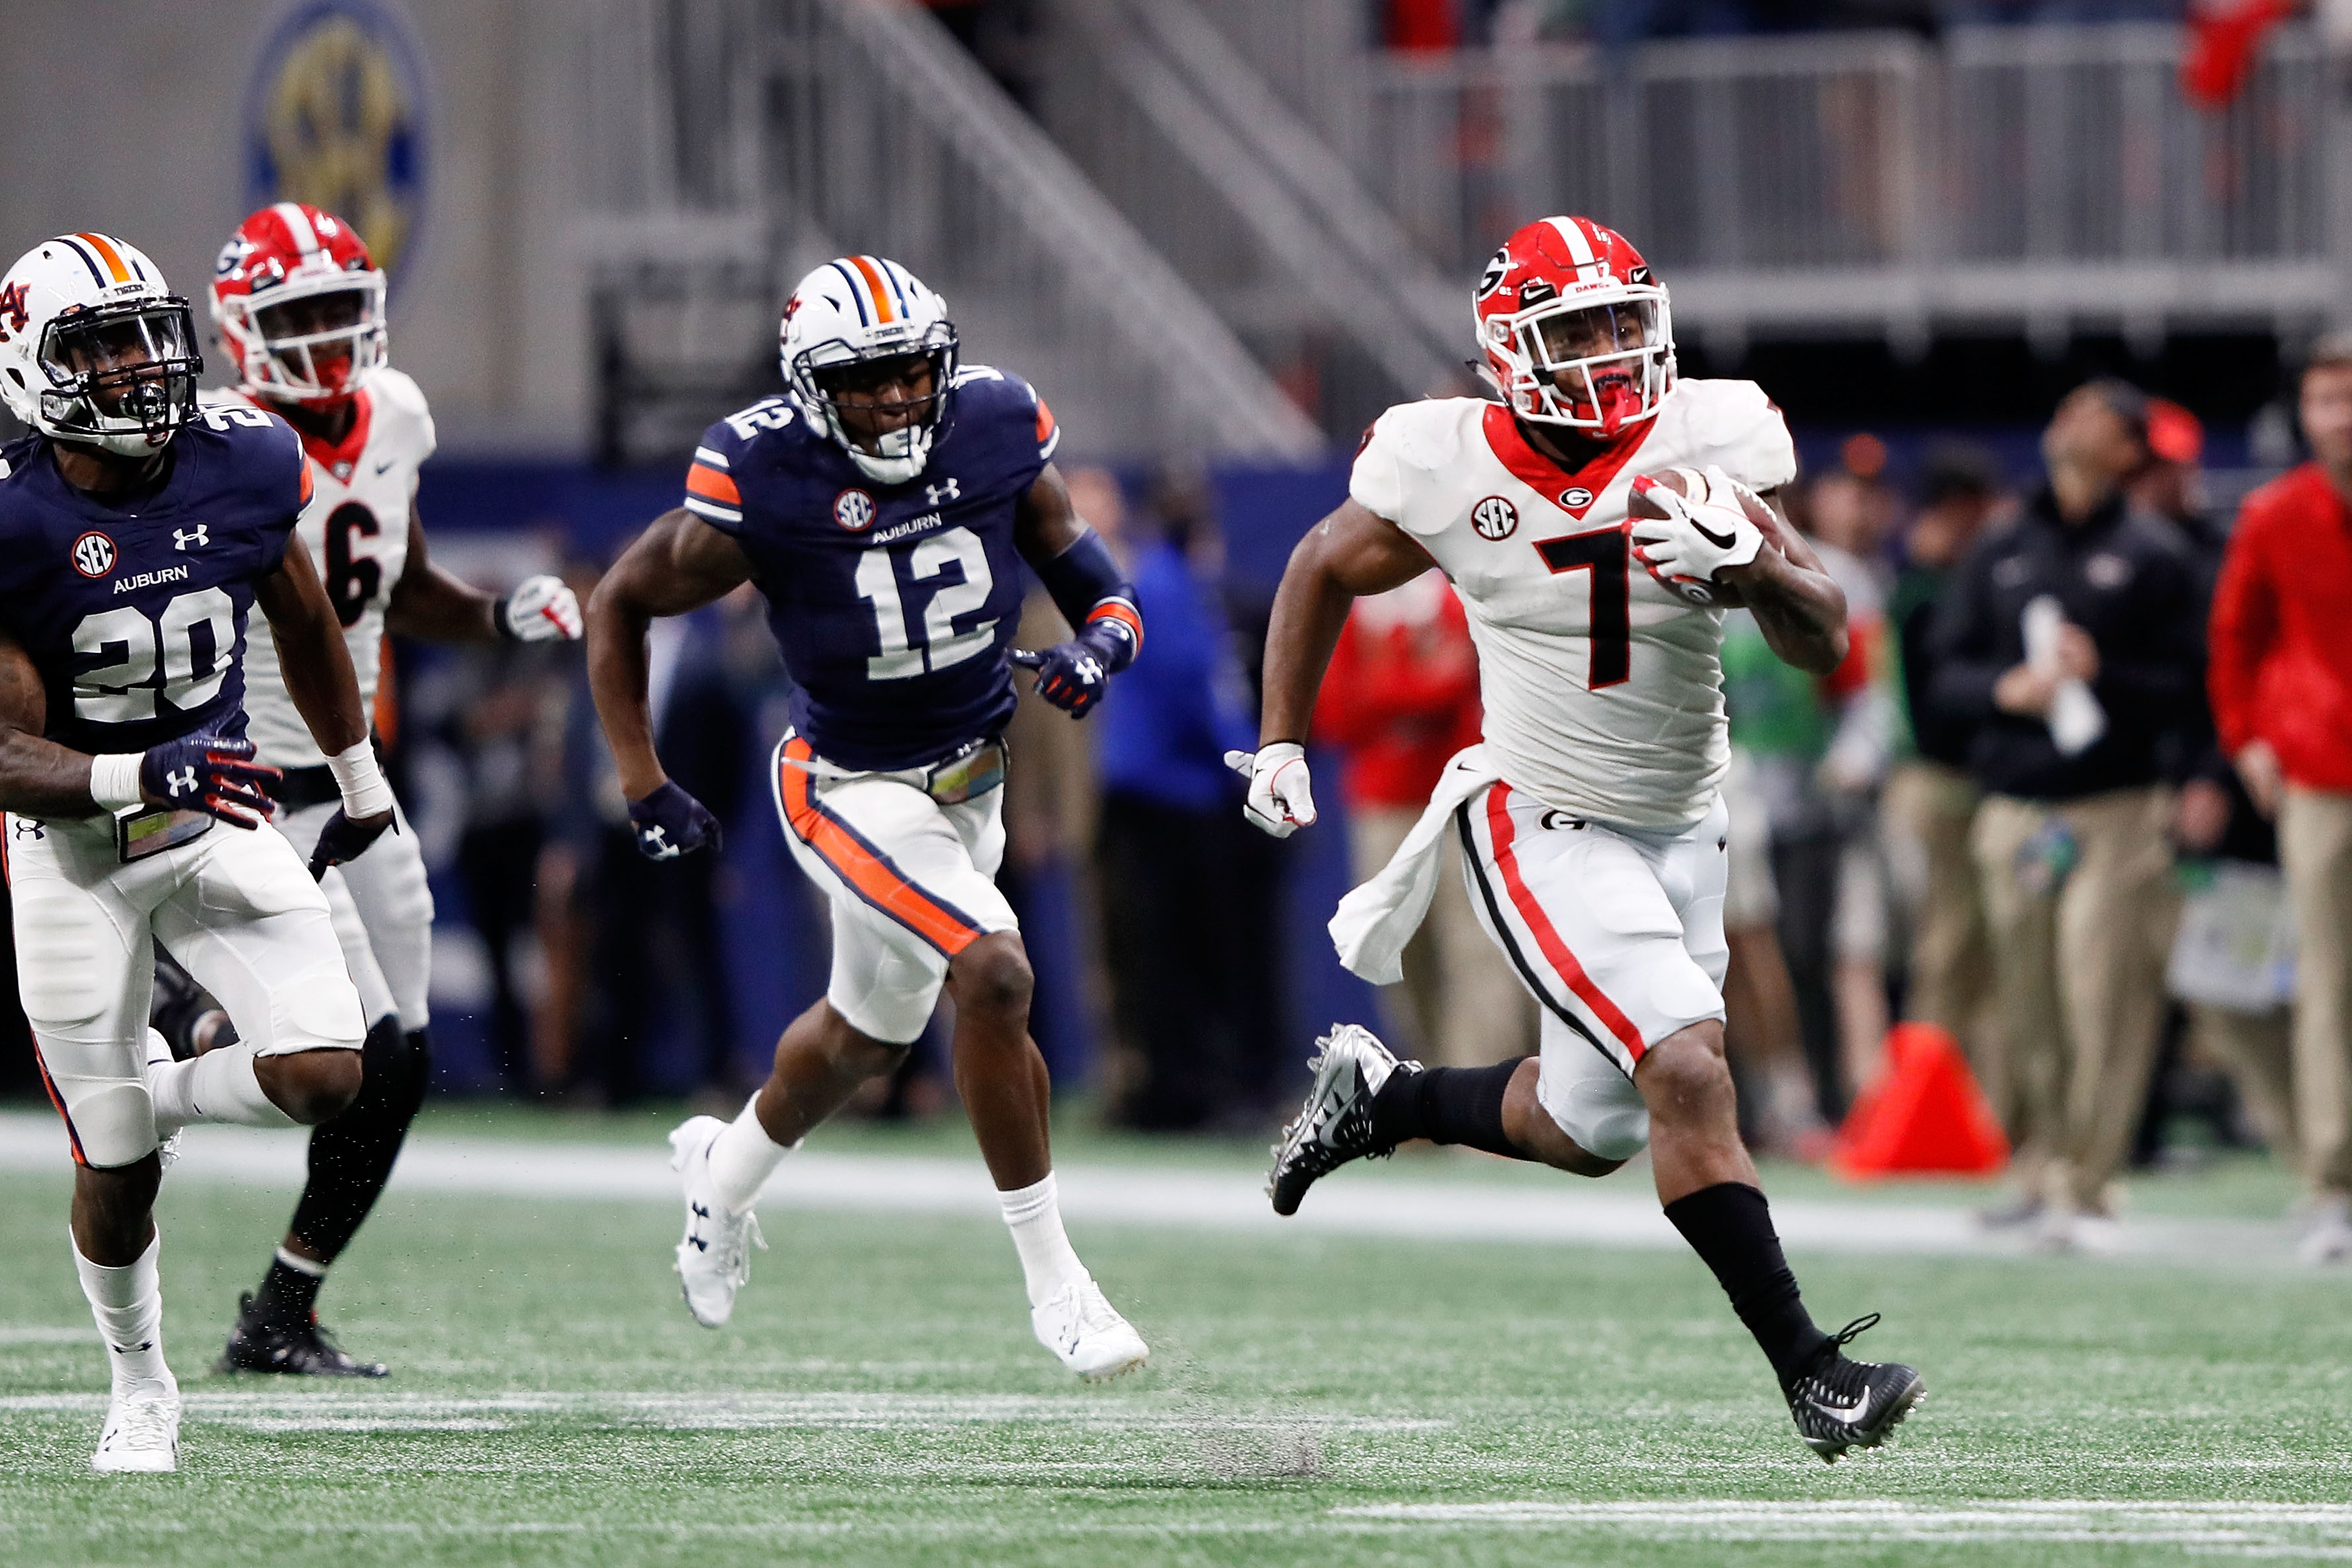 Georgia loses star nation's top linebacker Roquan Smith early to NFL Draft